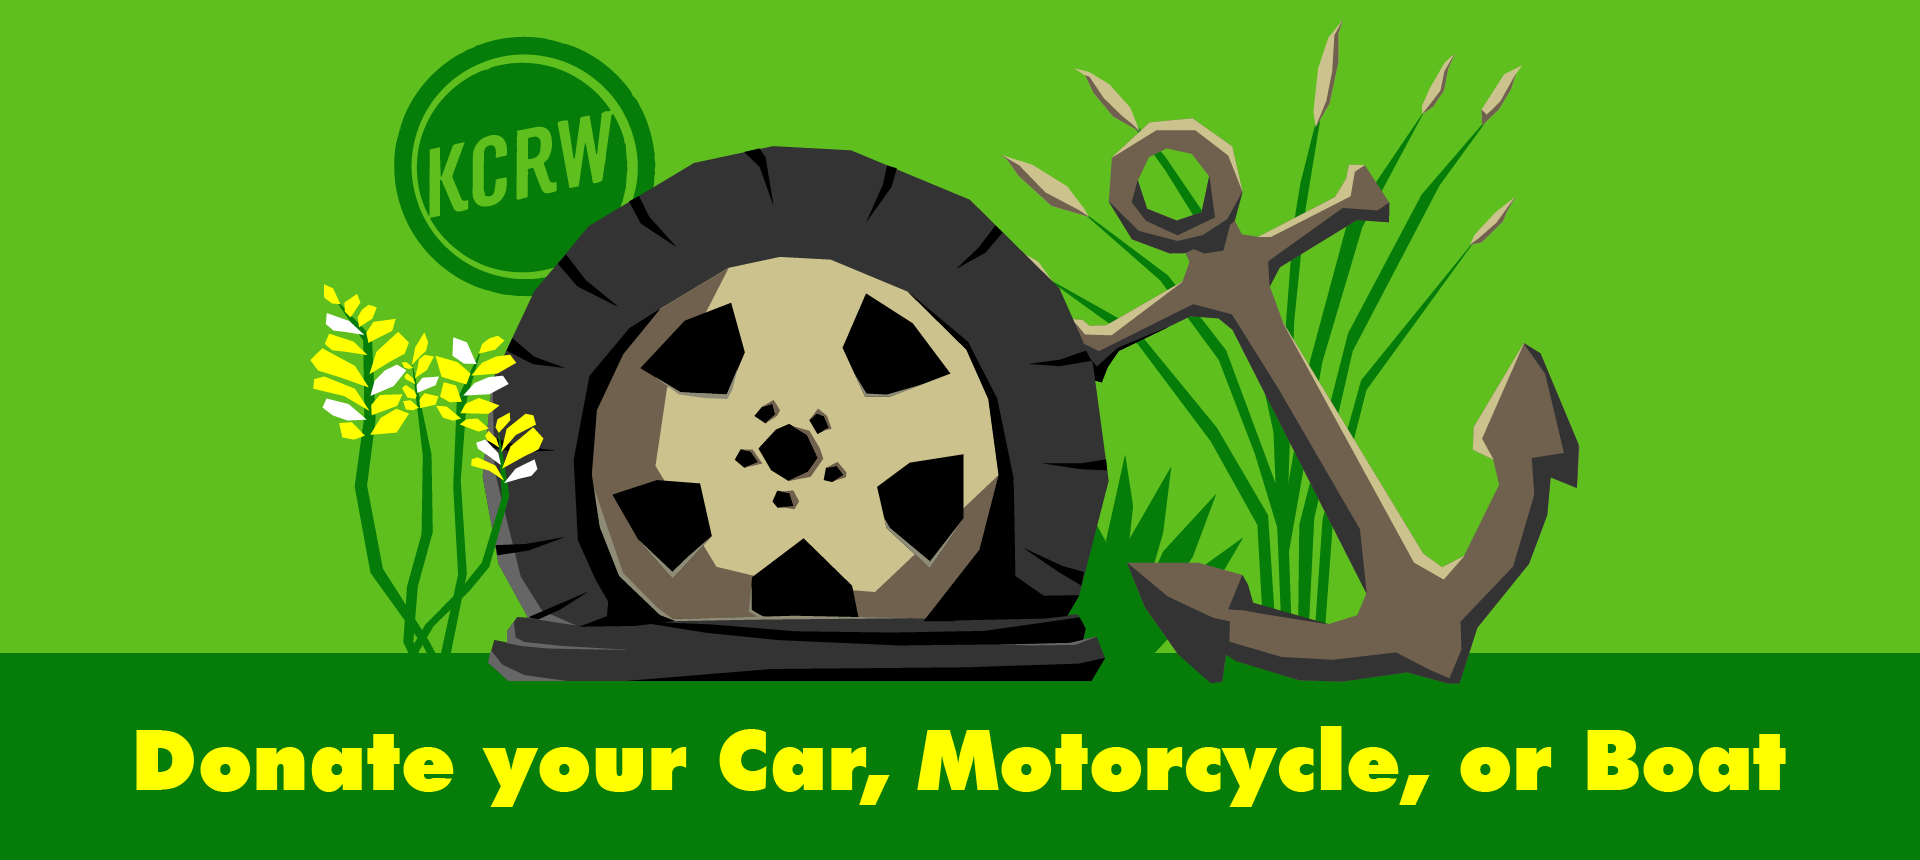 Donate your Car, Motorcycle or Boat